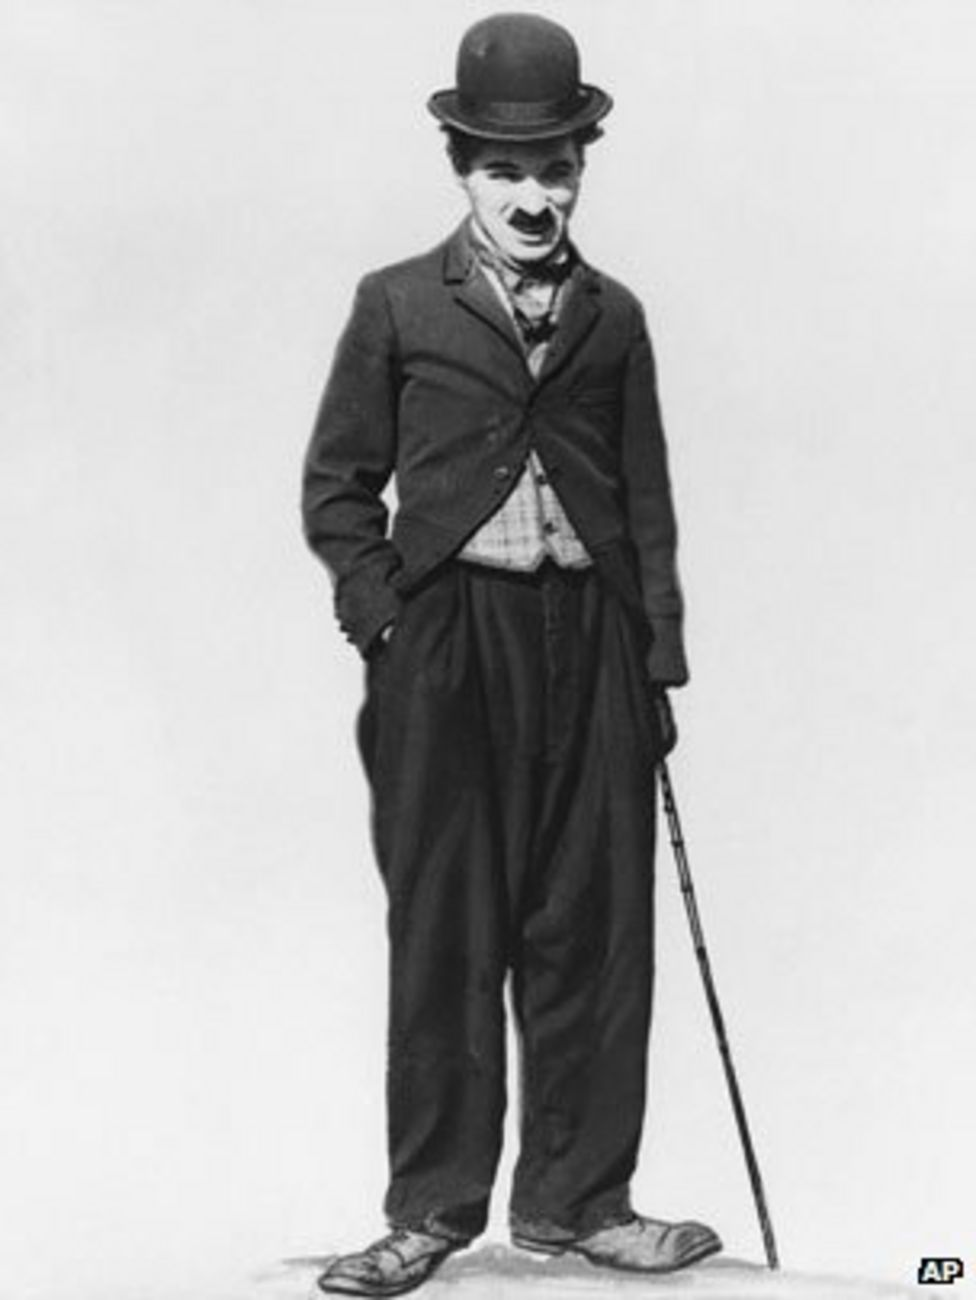 New £40m Charlie Chaplin museum planned in Switzerland